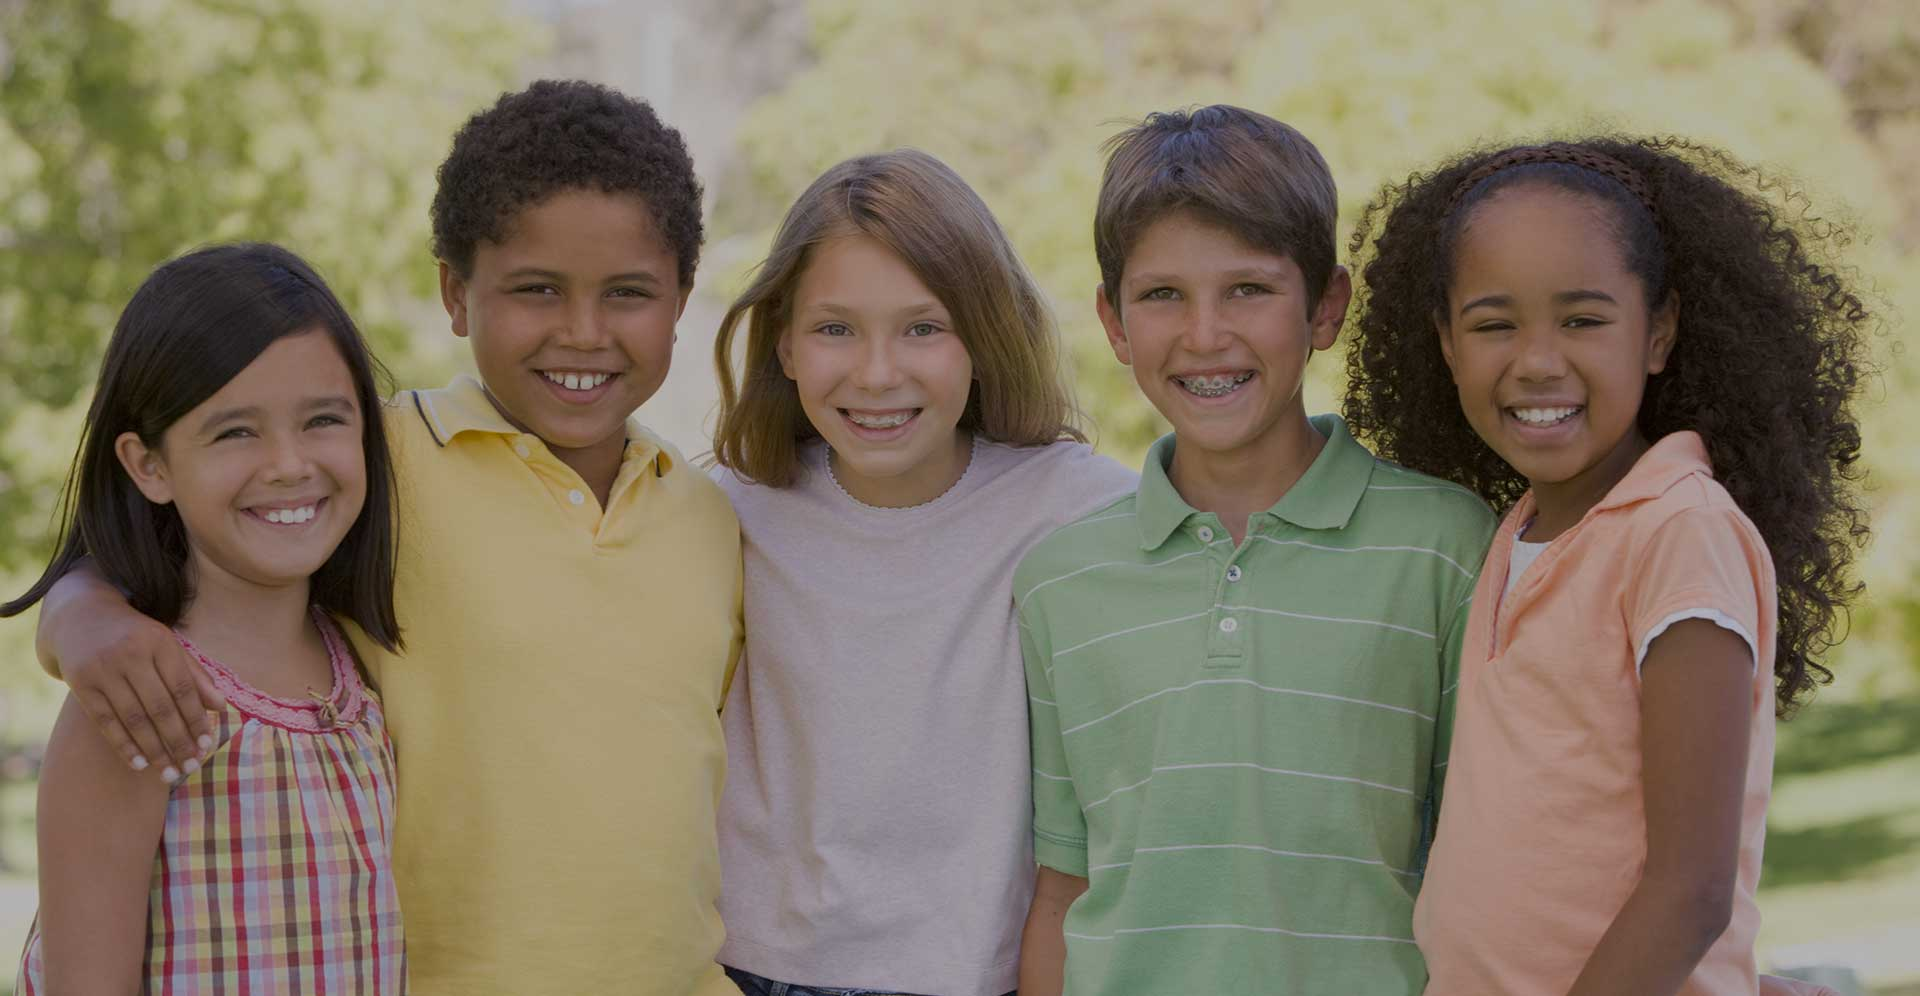 Five children standing in a row in a park smiling at camera